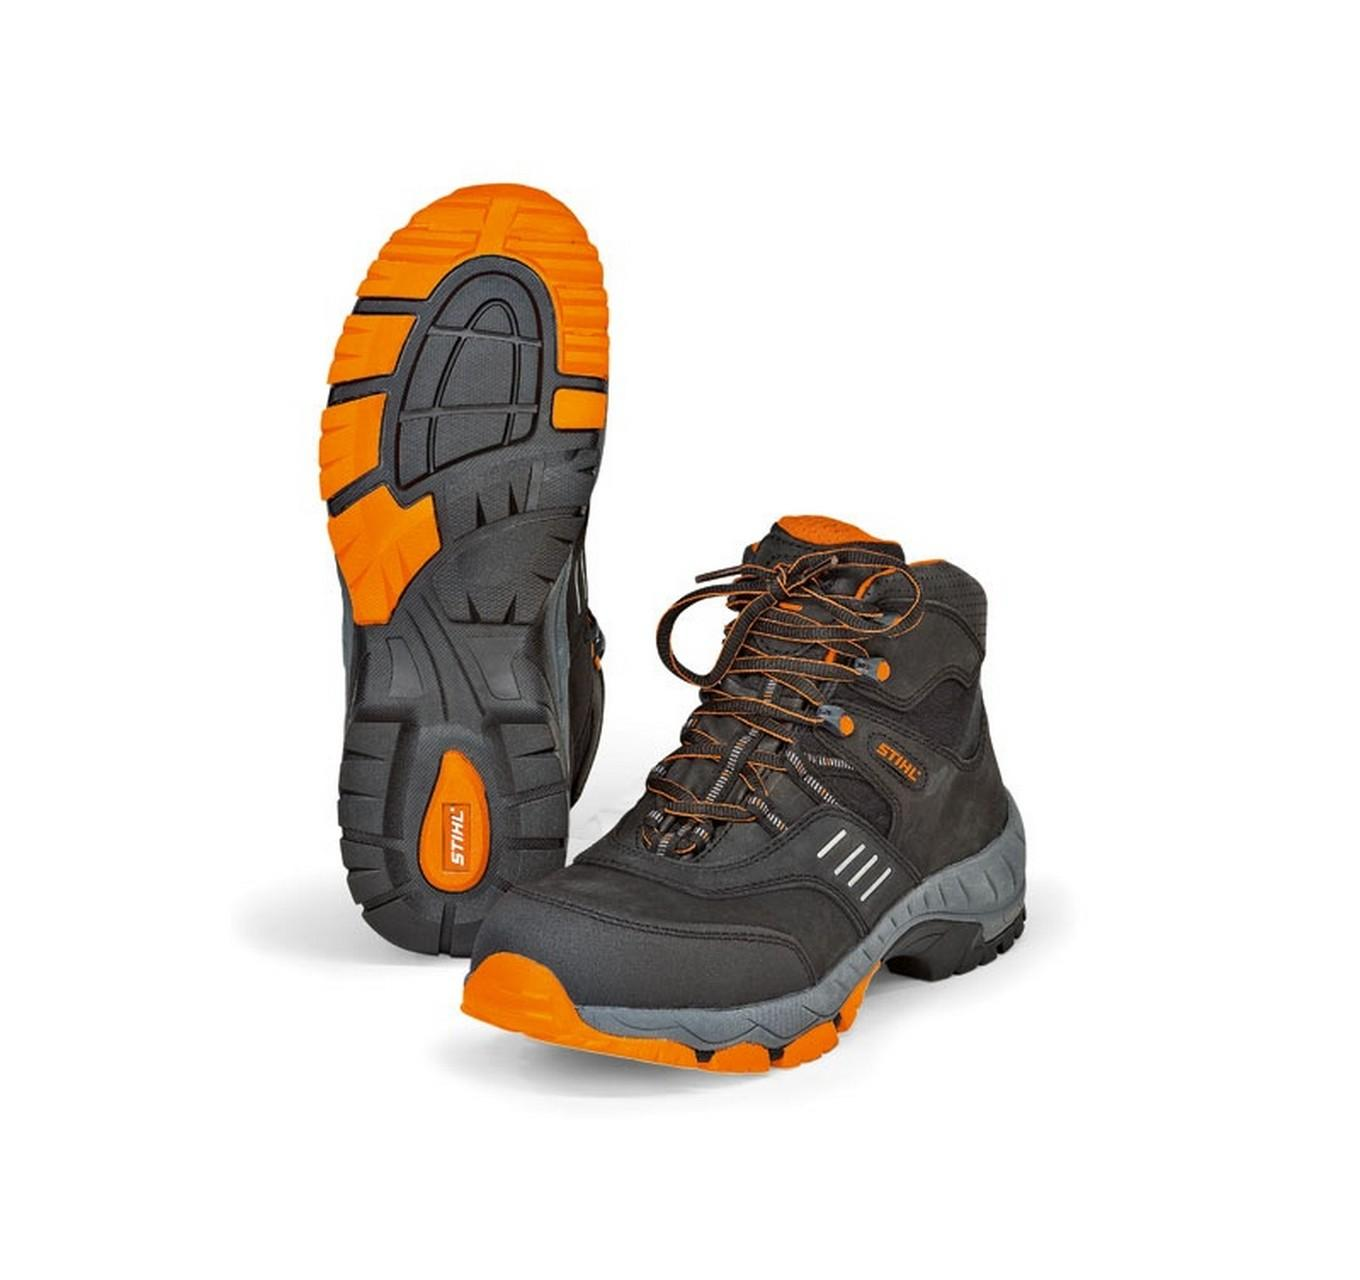 WORKER S3 Safety Boots 9.5